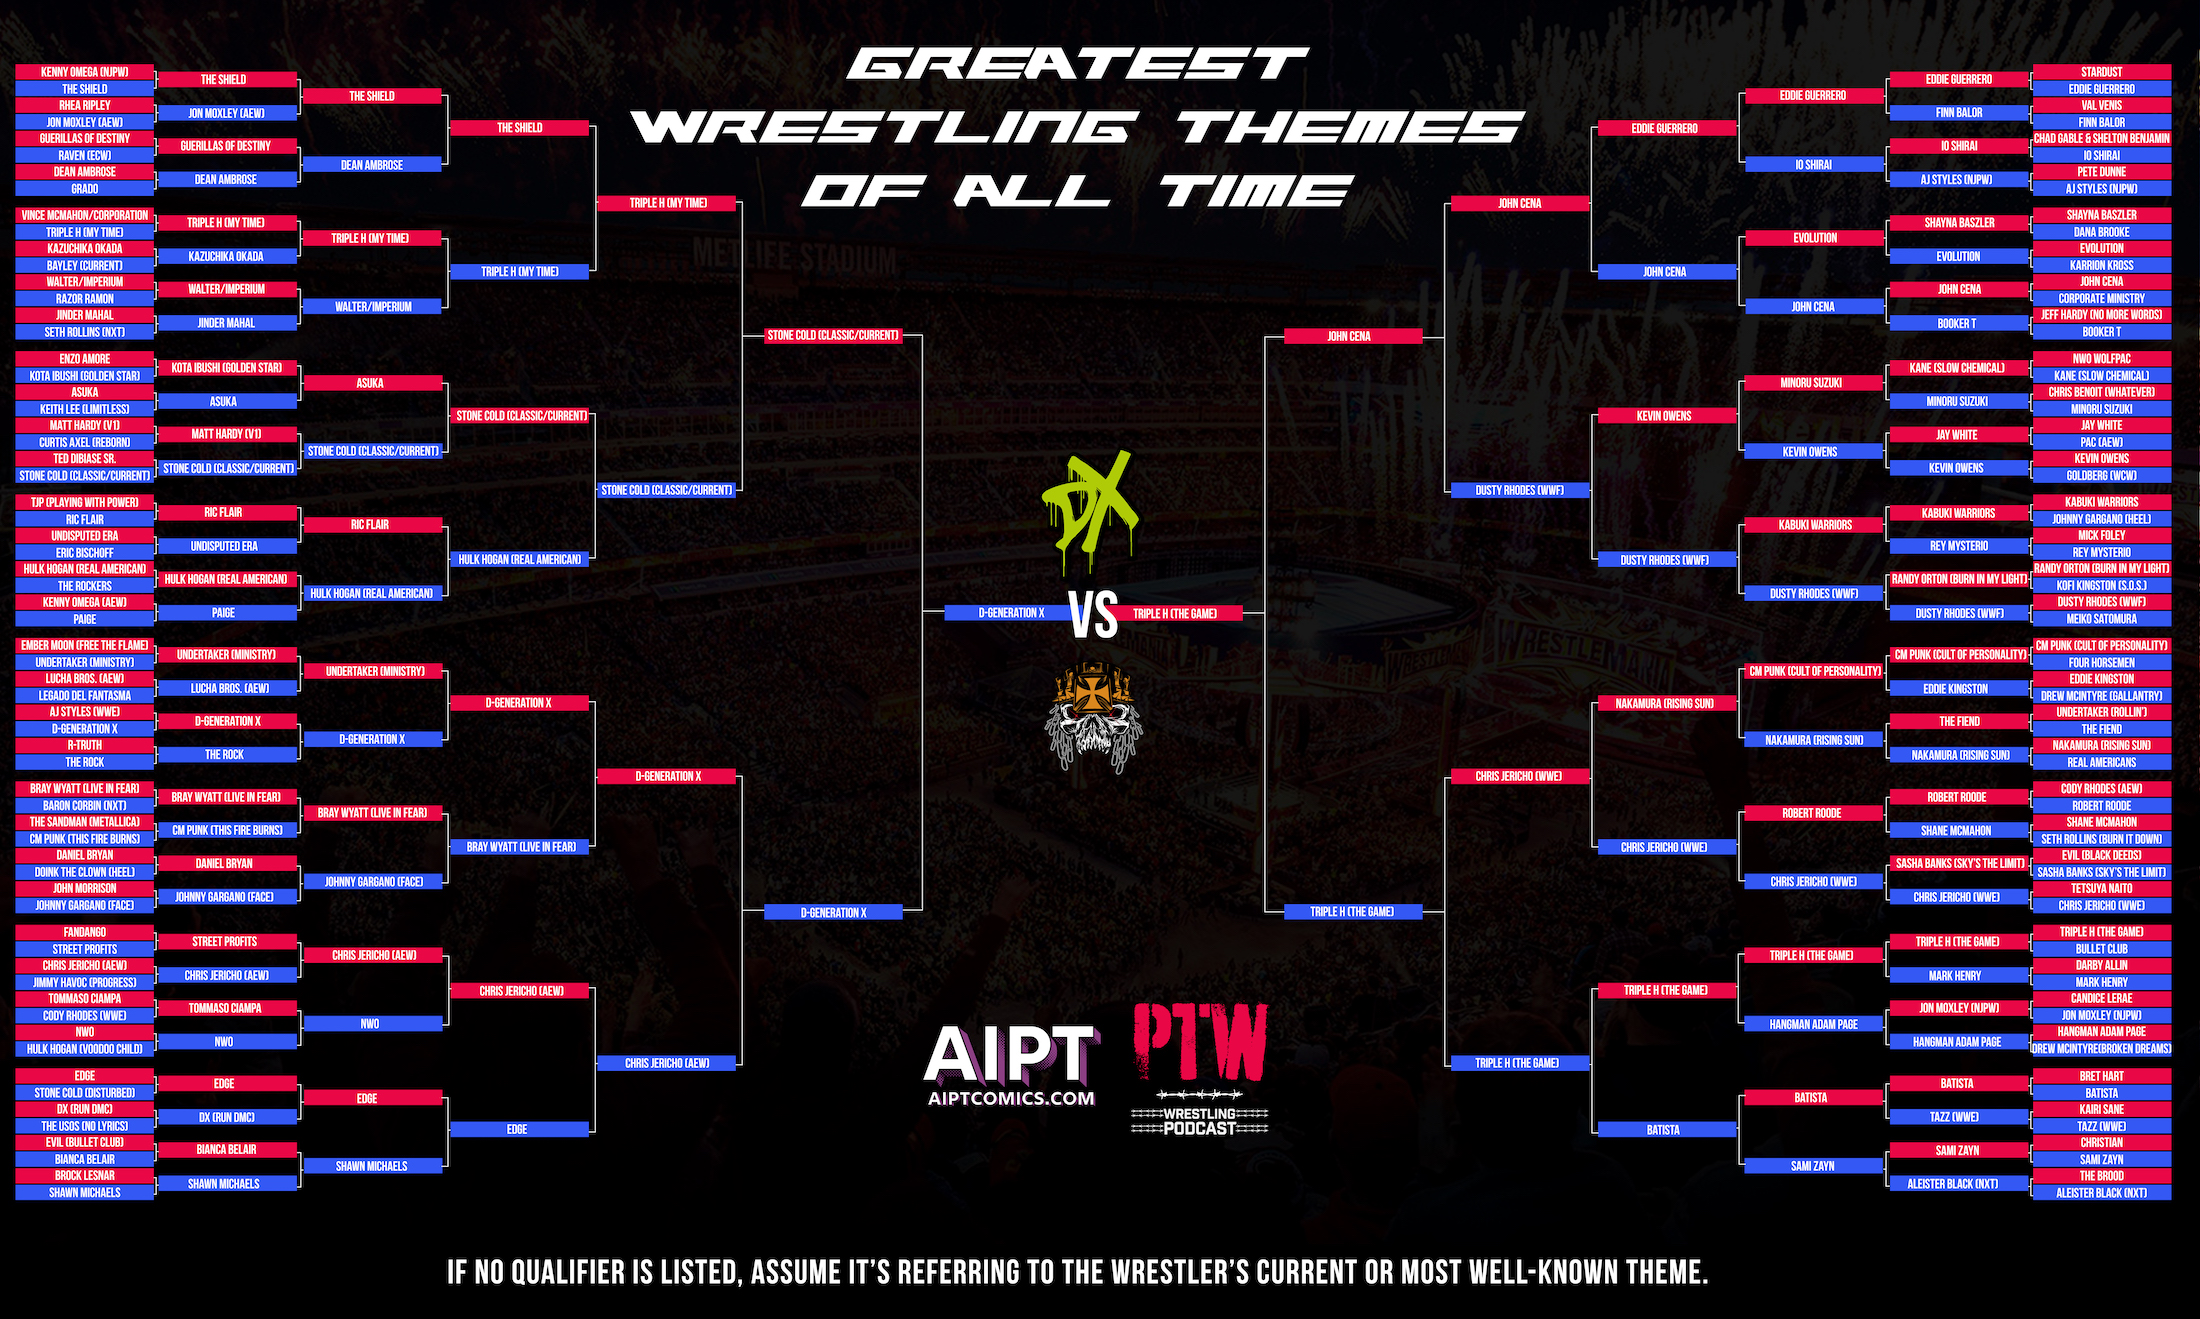 The Greatest Wrestling Themes of All Time: Final Four results